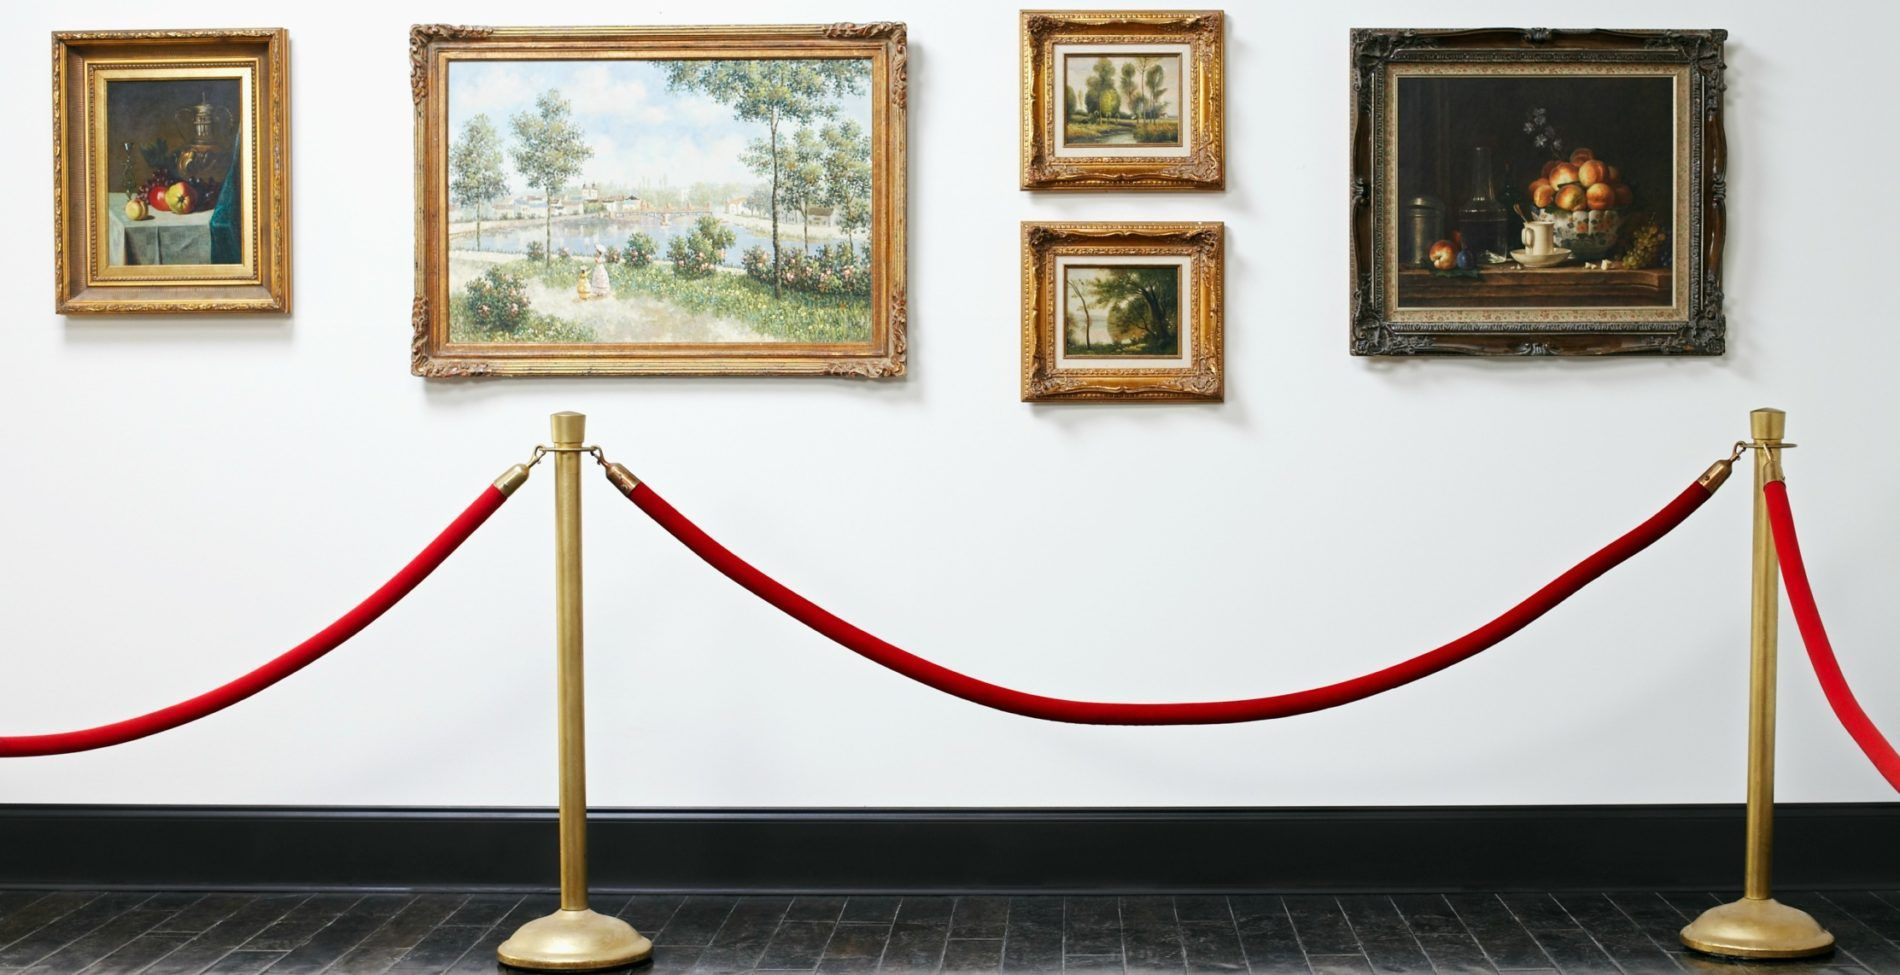 Here is What You Will See at the Lancaster Museum of Art